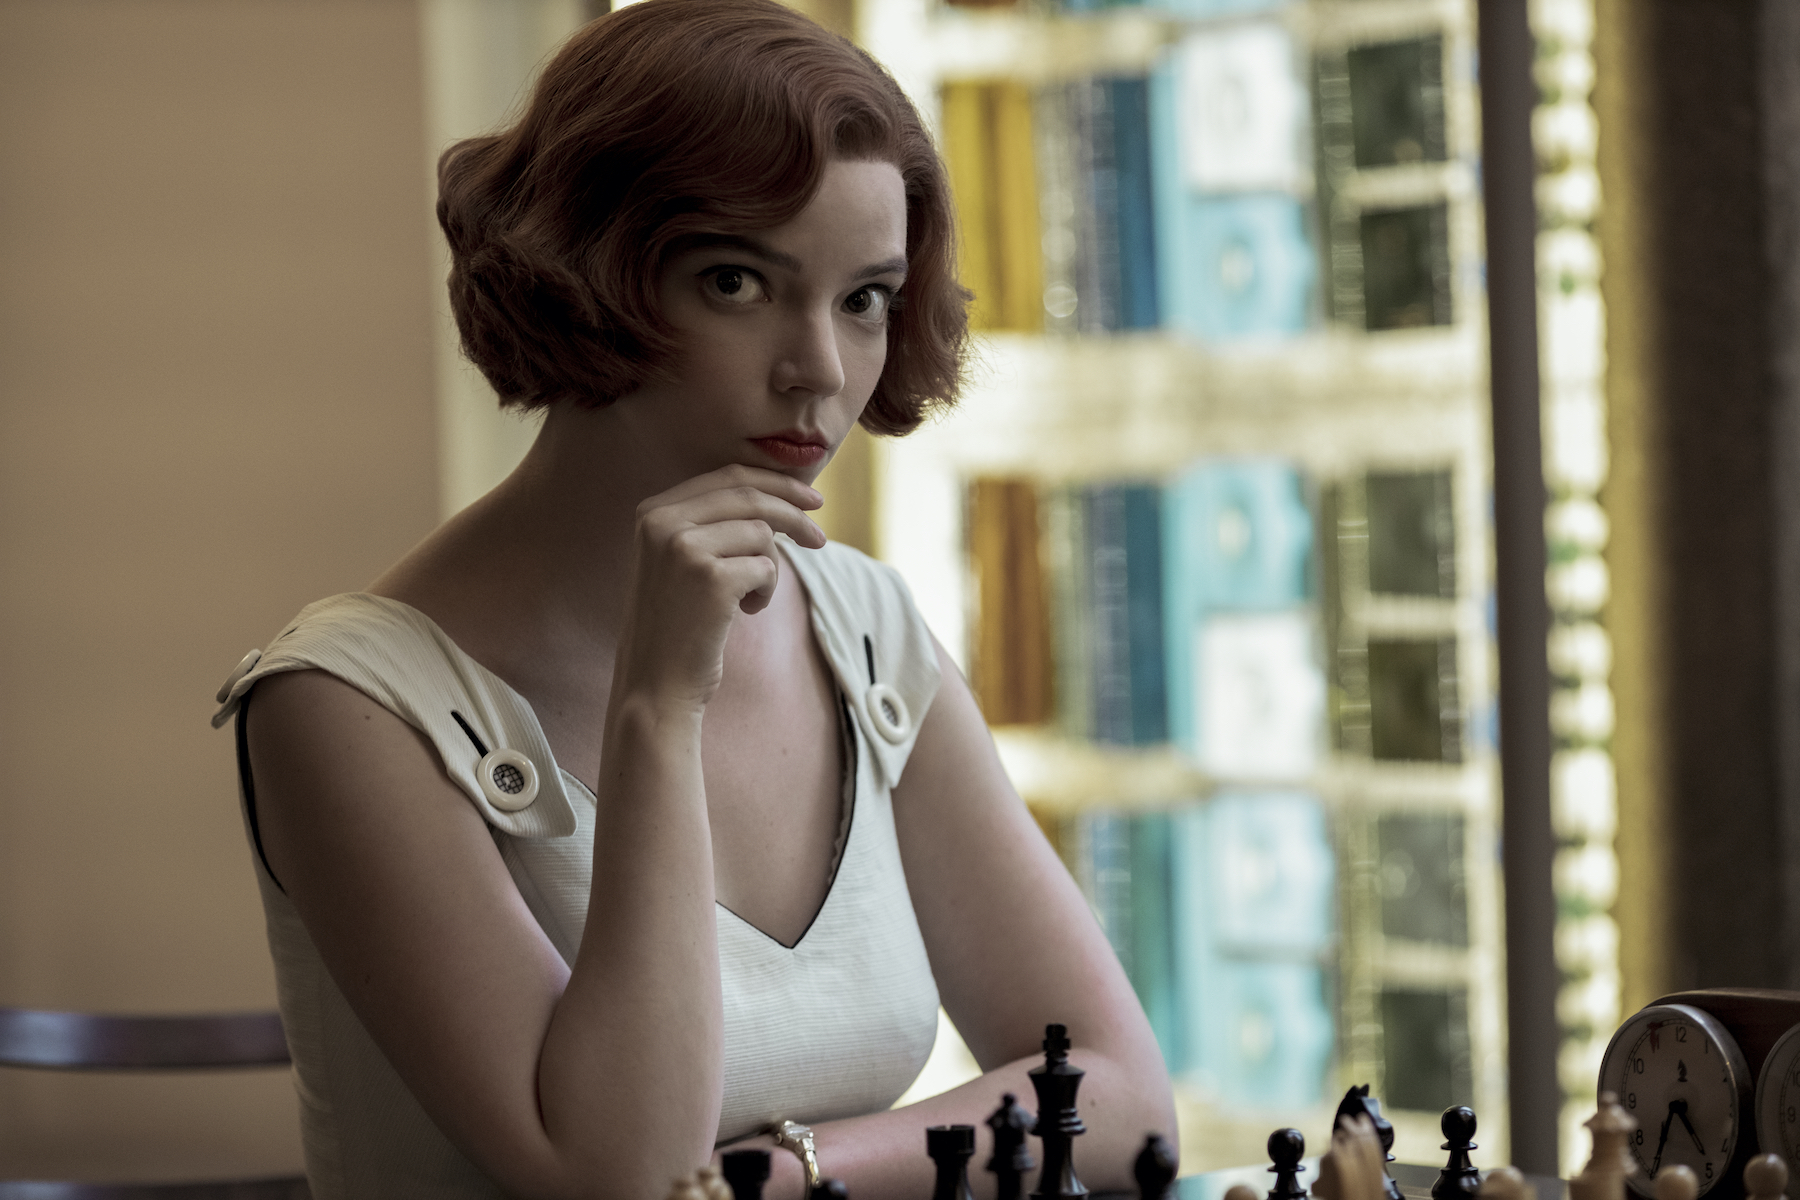 Fashion-forward chess queen Beth Harmon (played by Anya Taylor-Joy) in The Queen's Gambit